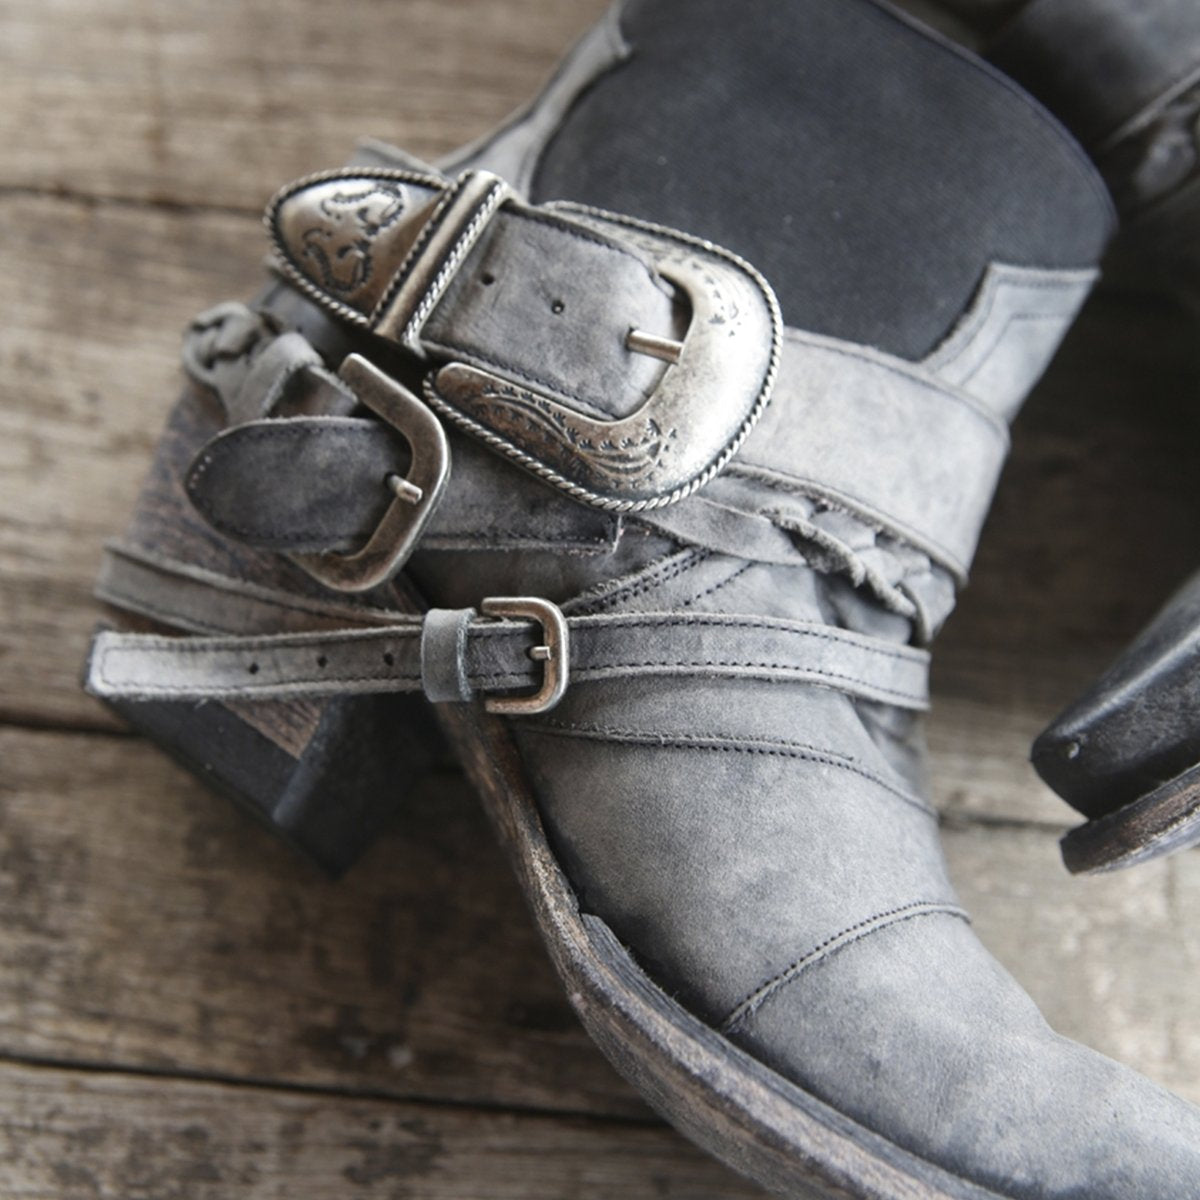 Junk Gypsy Hwy 237 Ladies Bootie by Lane Handmade Boots